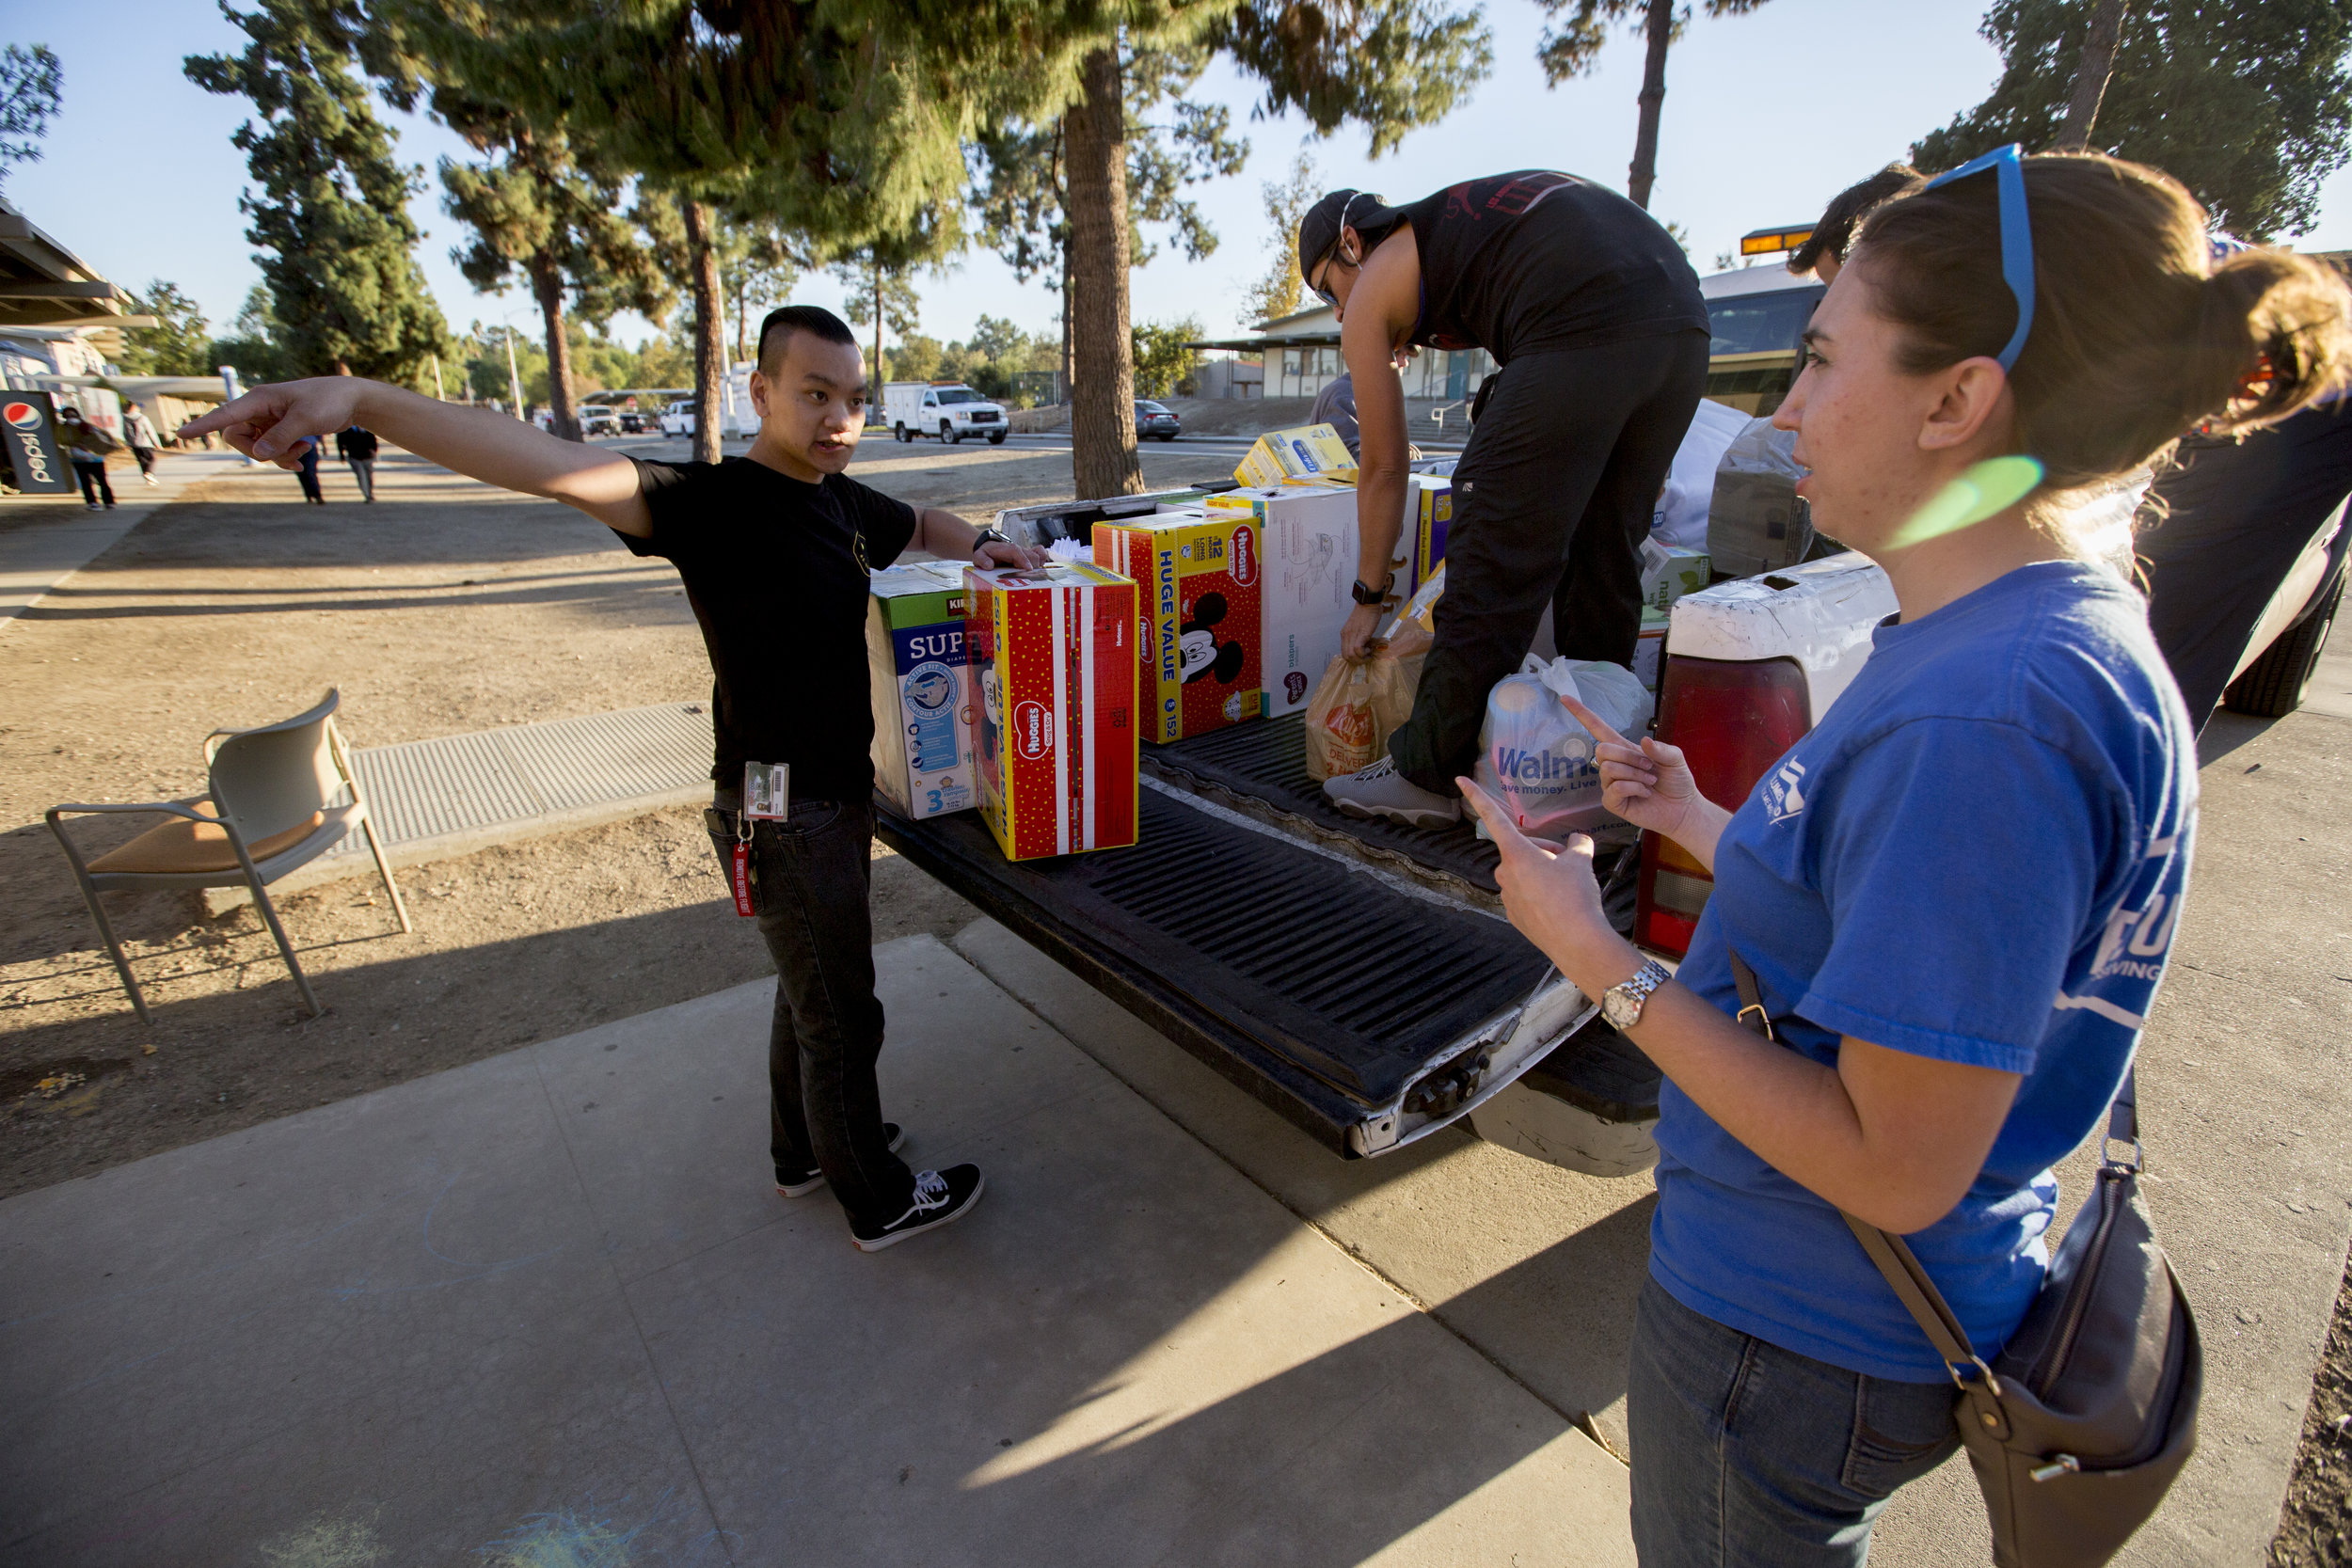 Volunteers unload supplies to help care for evacuees at the Woolsey fire evacuation center set up at Los Angeles Pierce College on November 9, 2018 in Woodland Hills, Calif. (Jose Lopez)